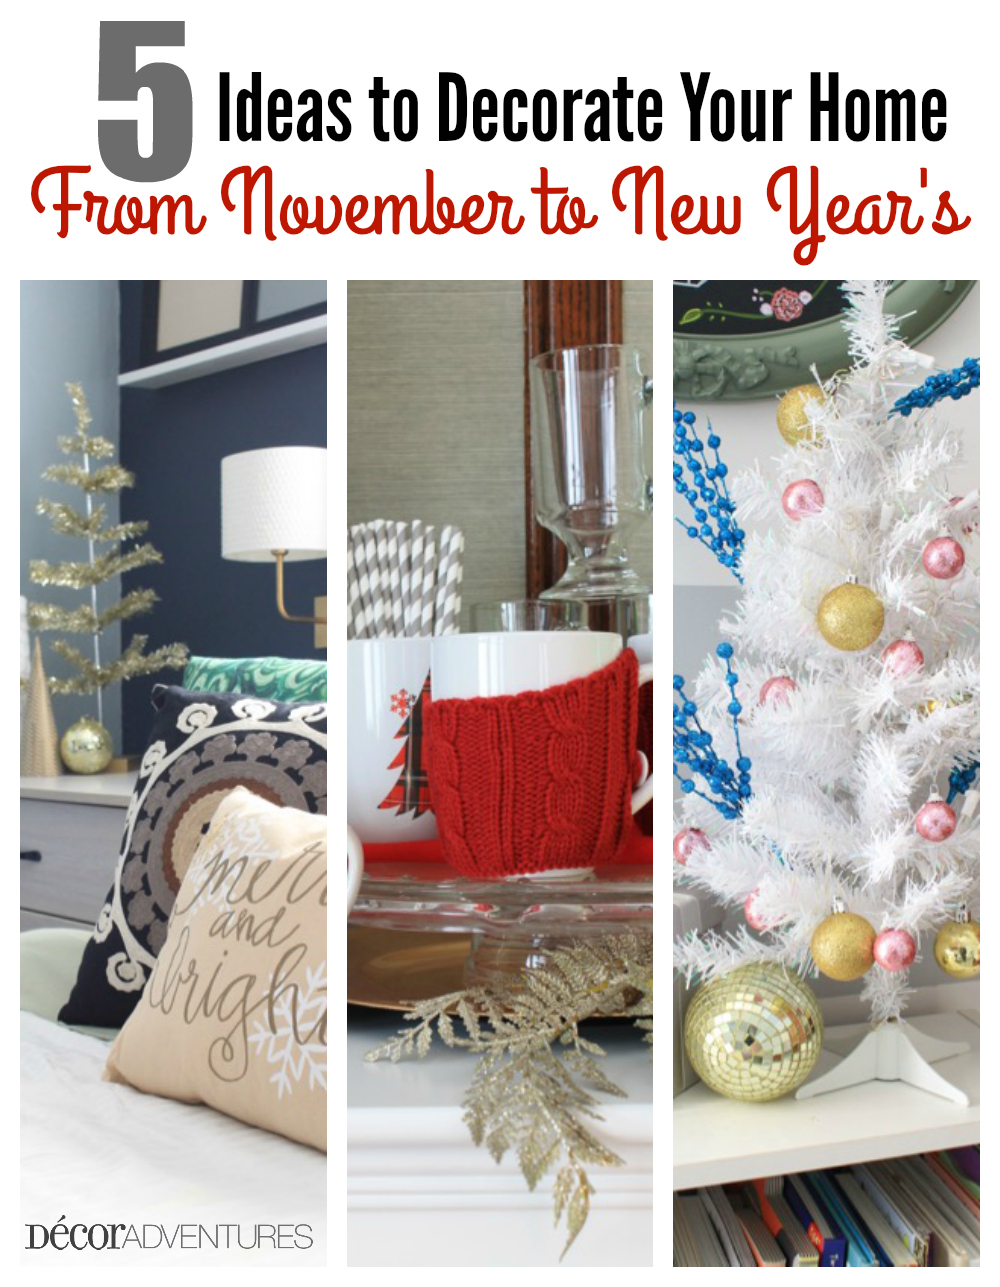 Decorate Your Home For The Holidays